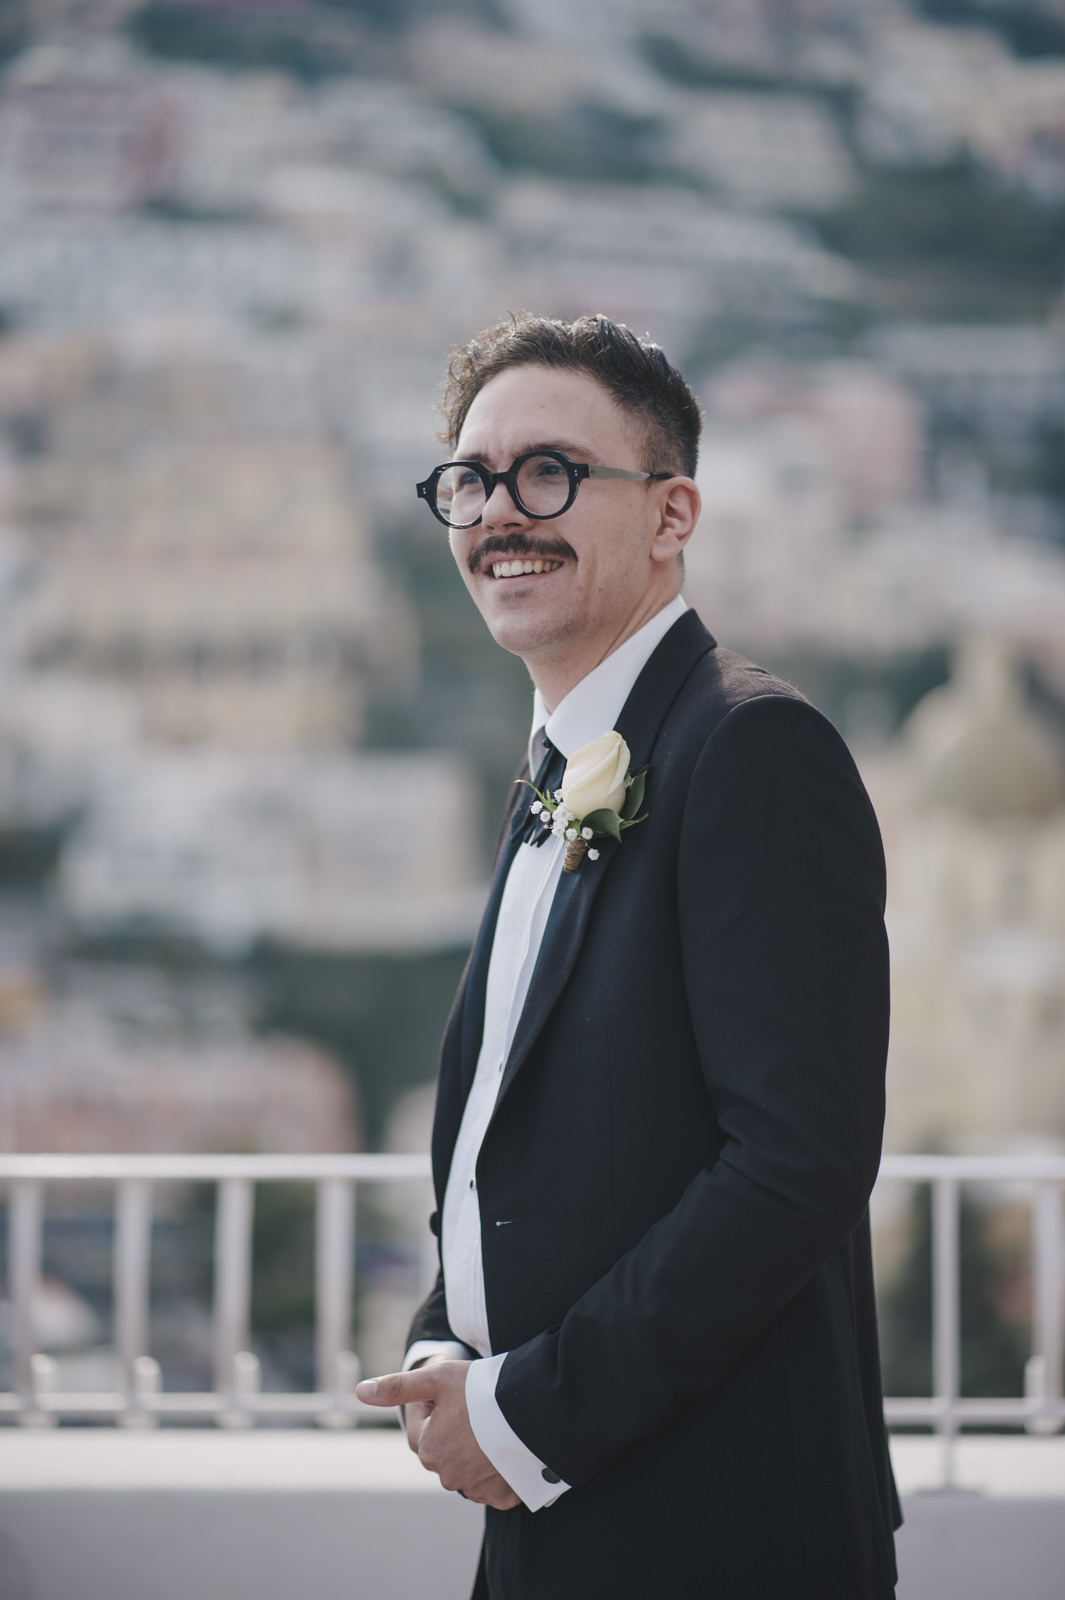 groom's portrait with Positano on the background